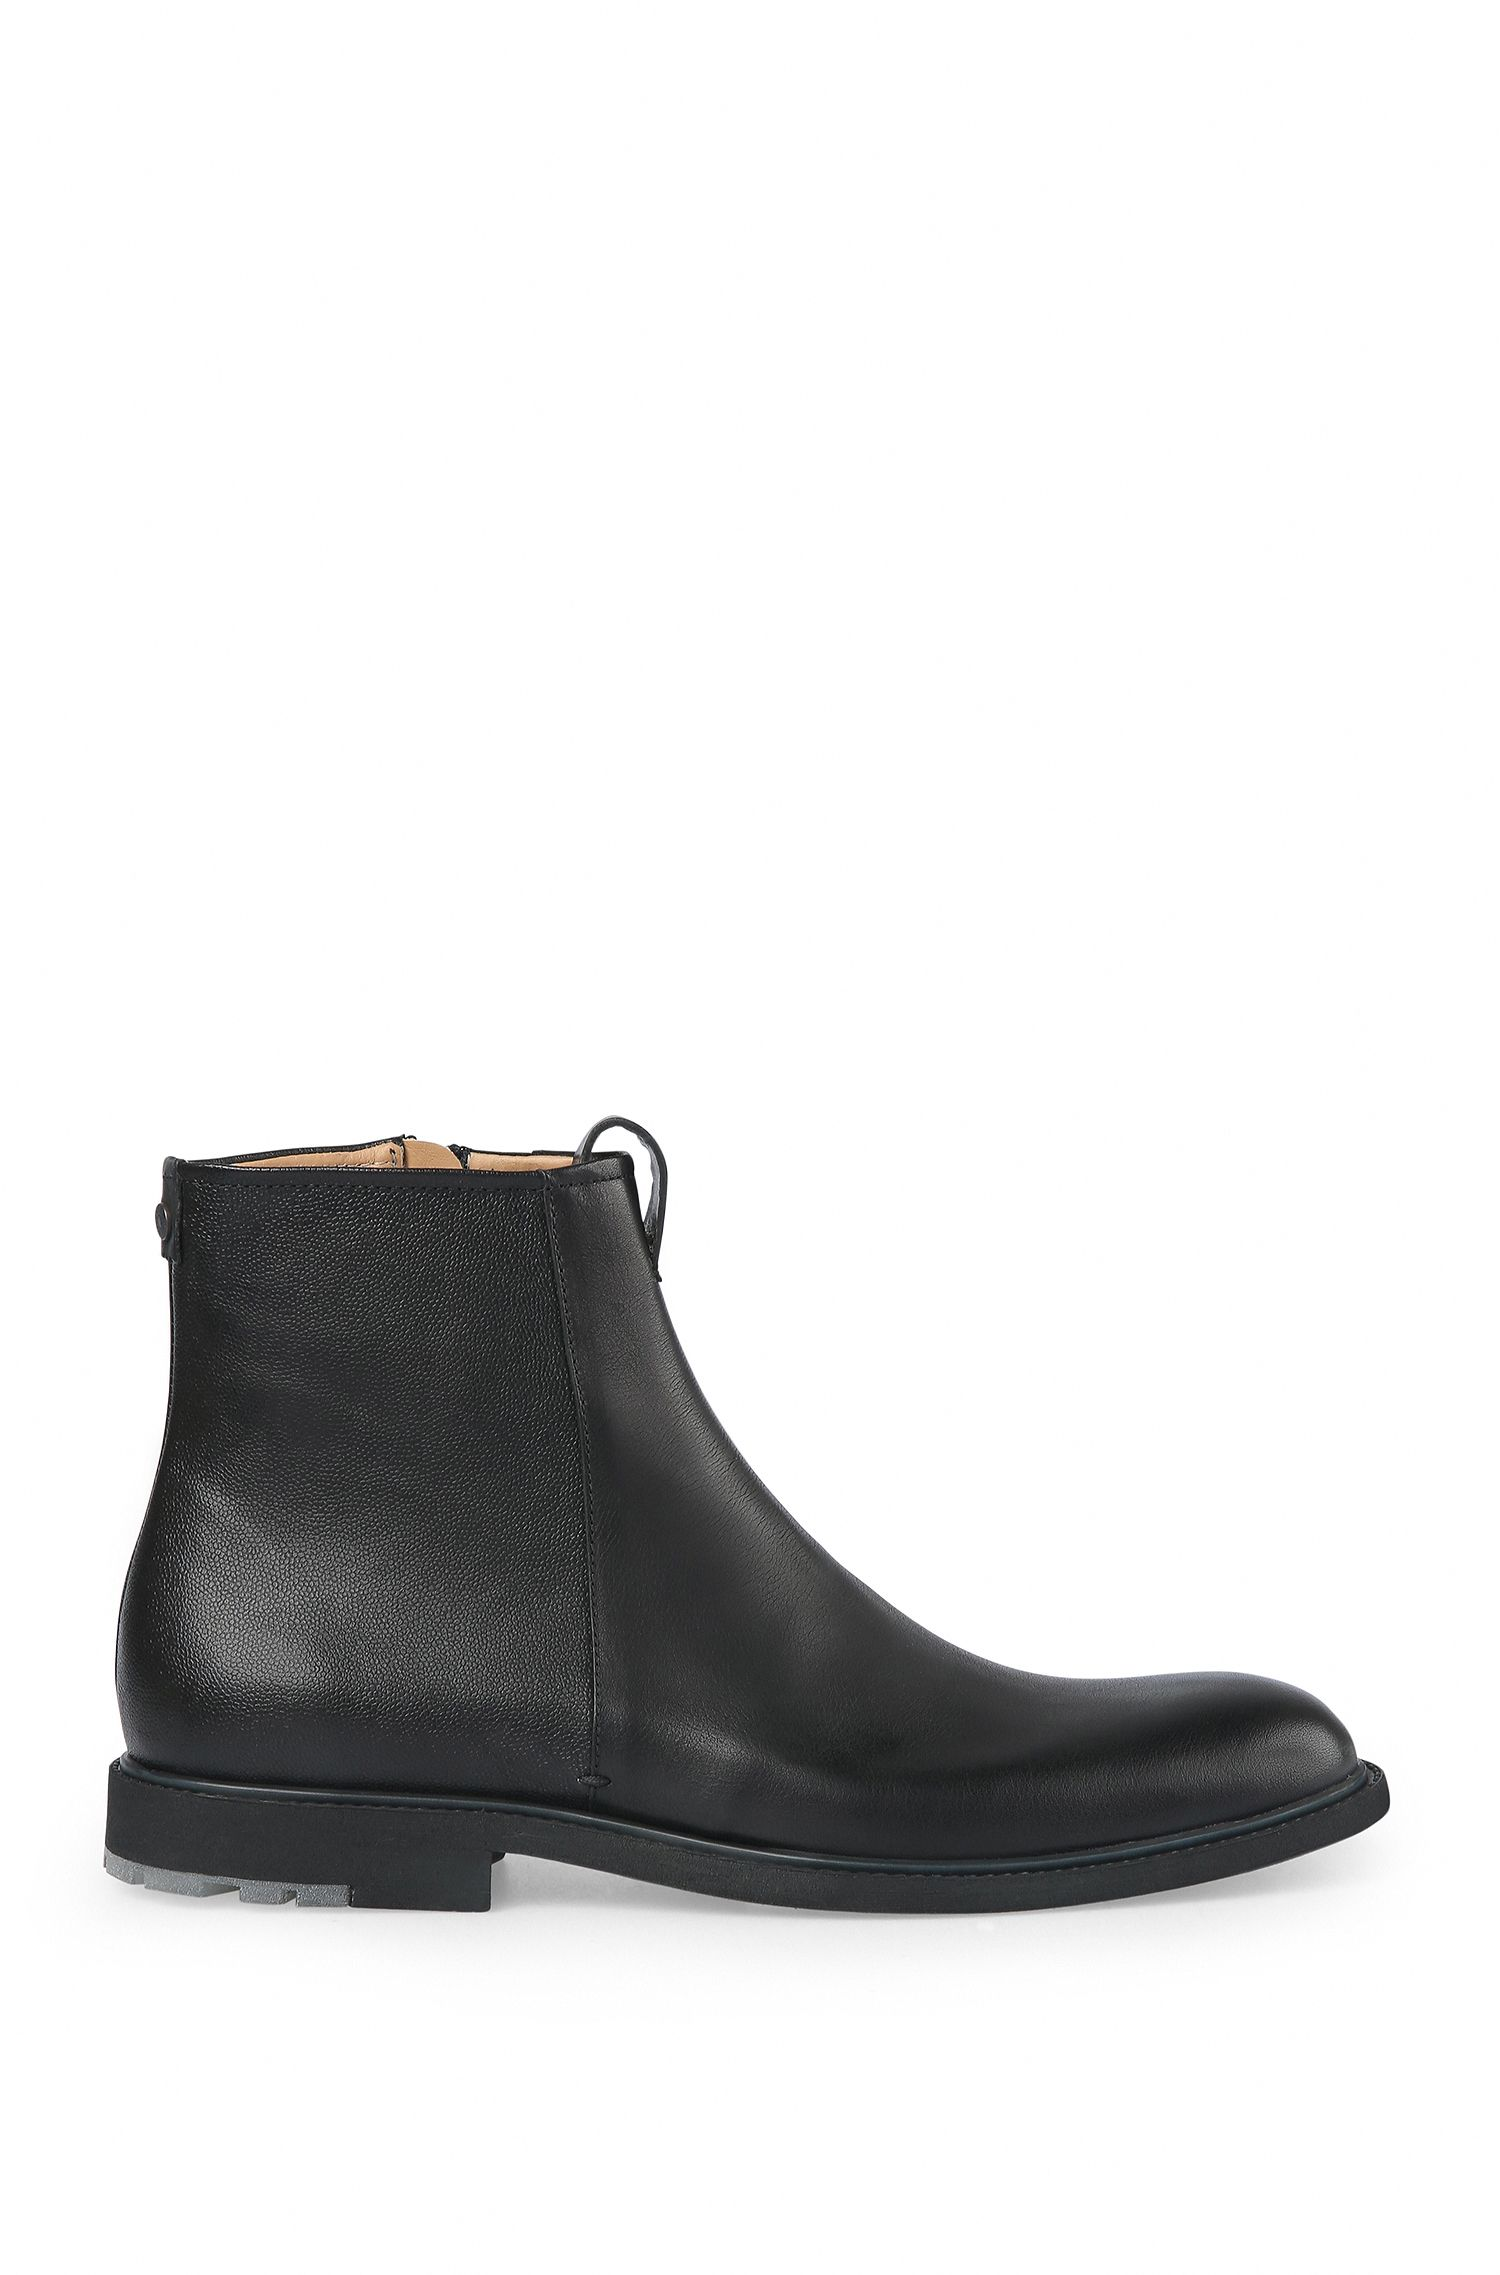 Leather Ankle Boot | Cultroot Zipb Itwsgr